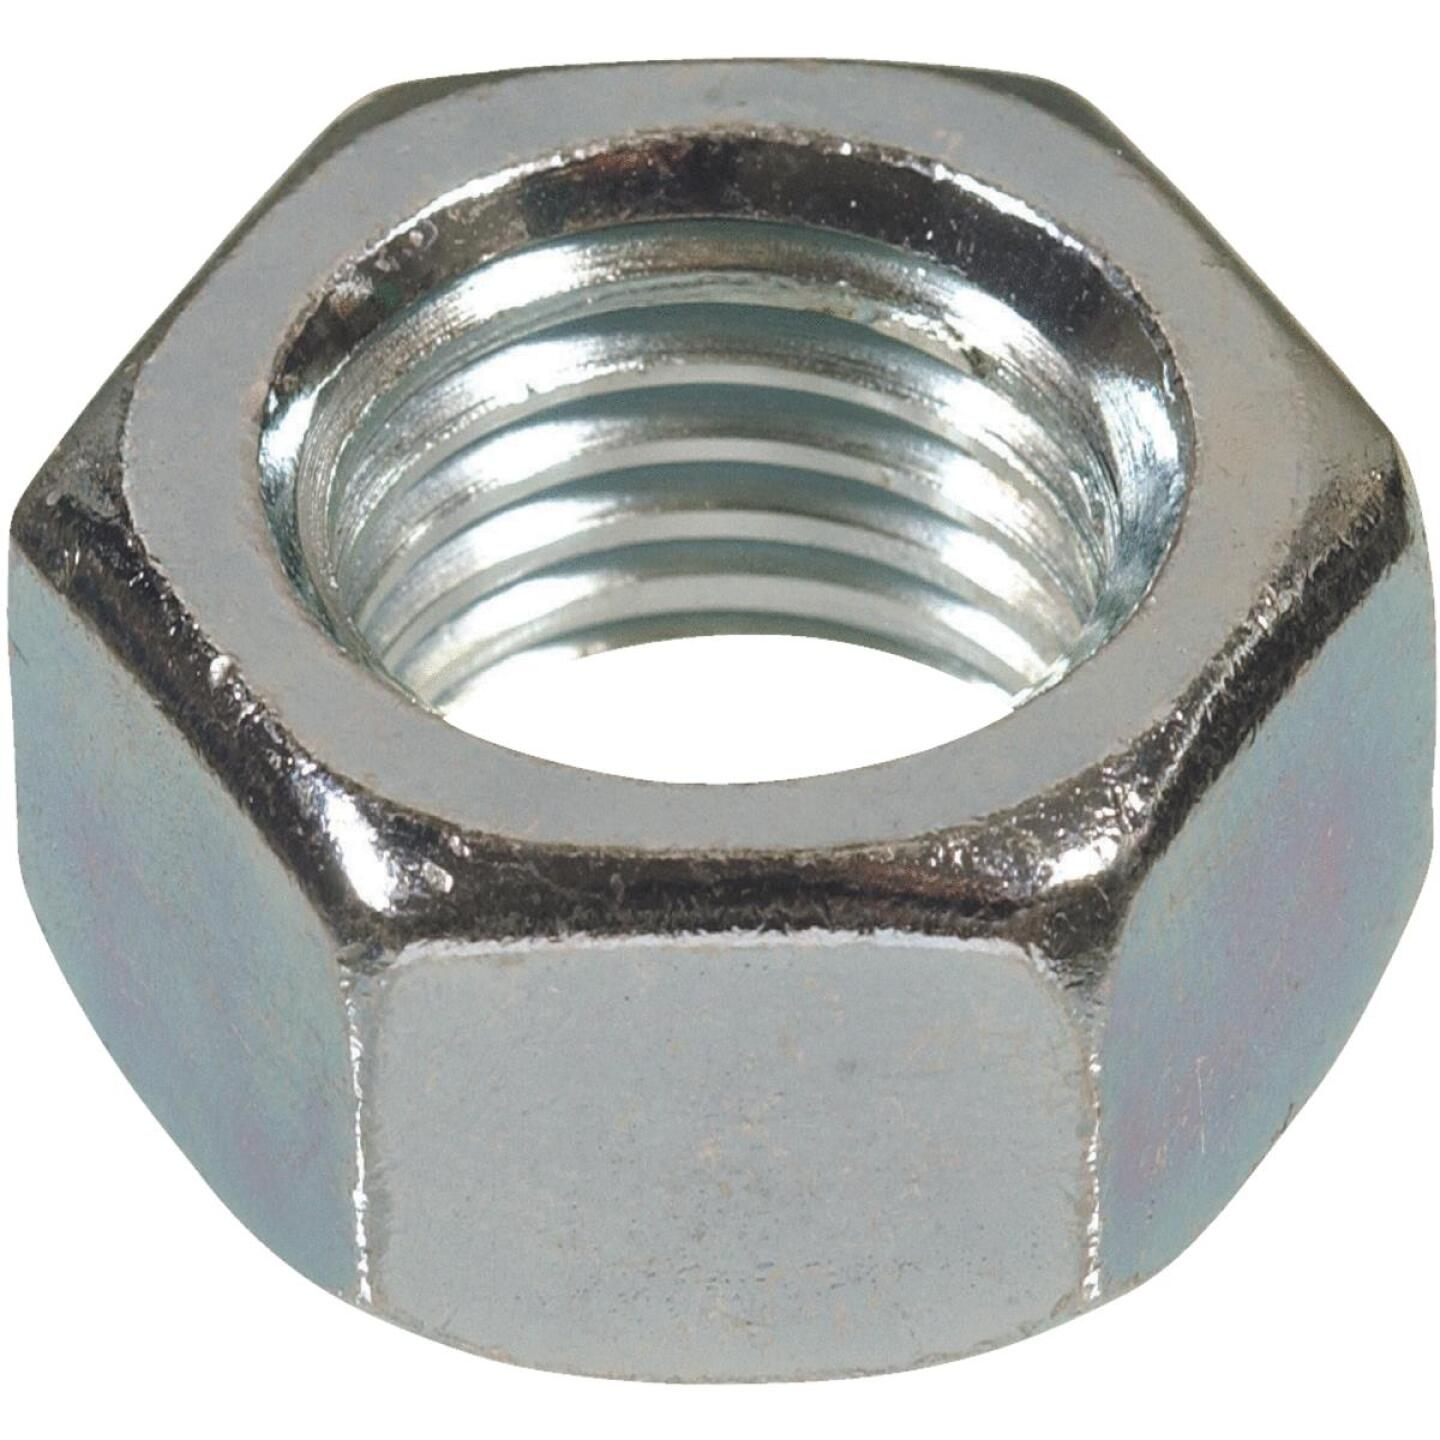 Hillman 7/16 In. 14 tpi Grade 2 Zinc Hex Nuts (50 Ct.) Image 1